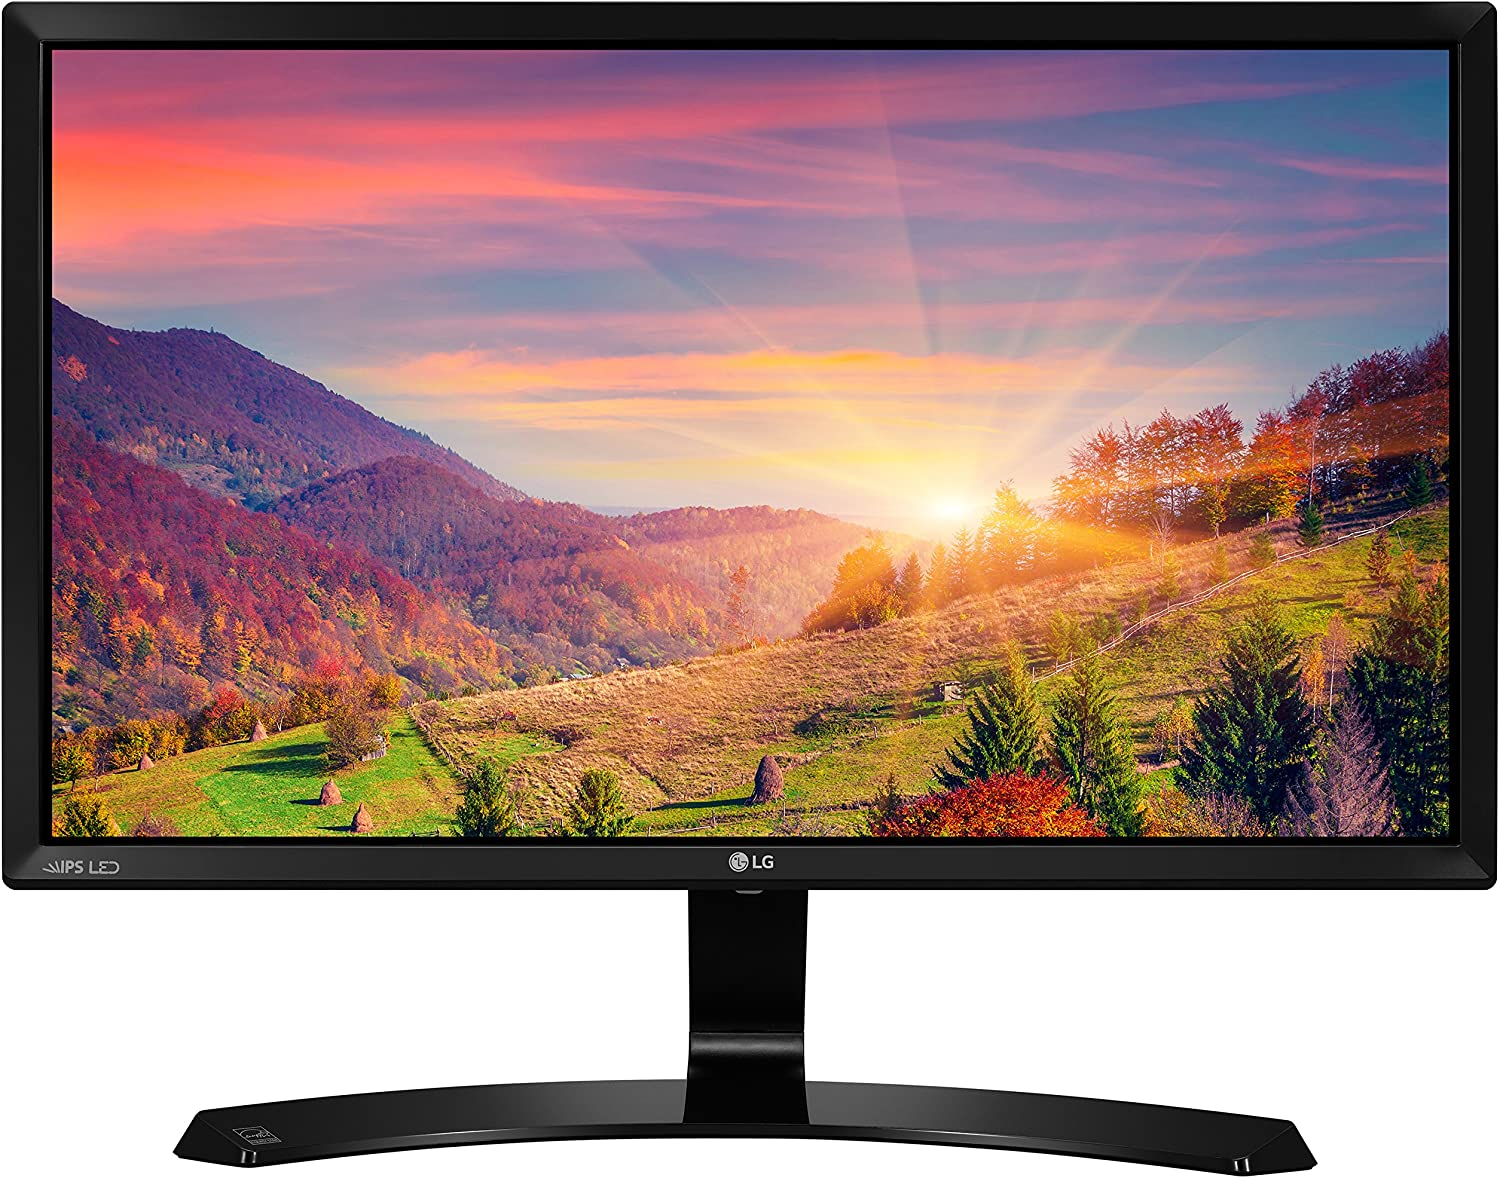 LG 22MP58VQ-P - Monitor IPS/LED de 55 cm (22 pulgadas, Full HD, IPS, LED, 1920 x 1080 pixeles, 5 ms, 16:9, 250 cd/m2) Color Negro: Lg: Amazon.es: Informática